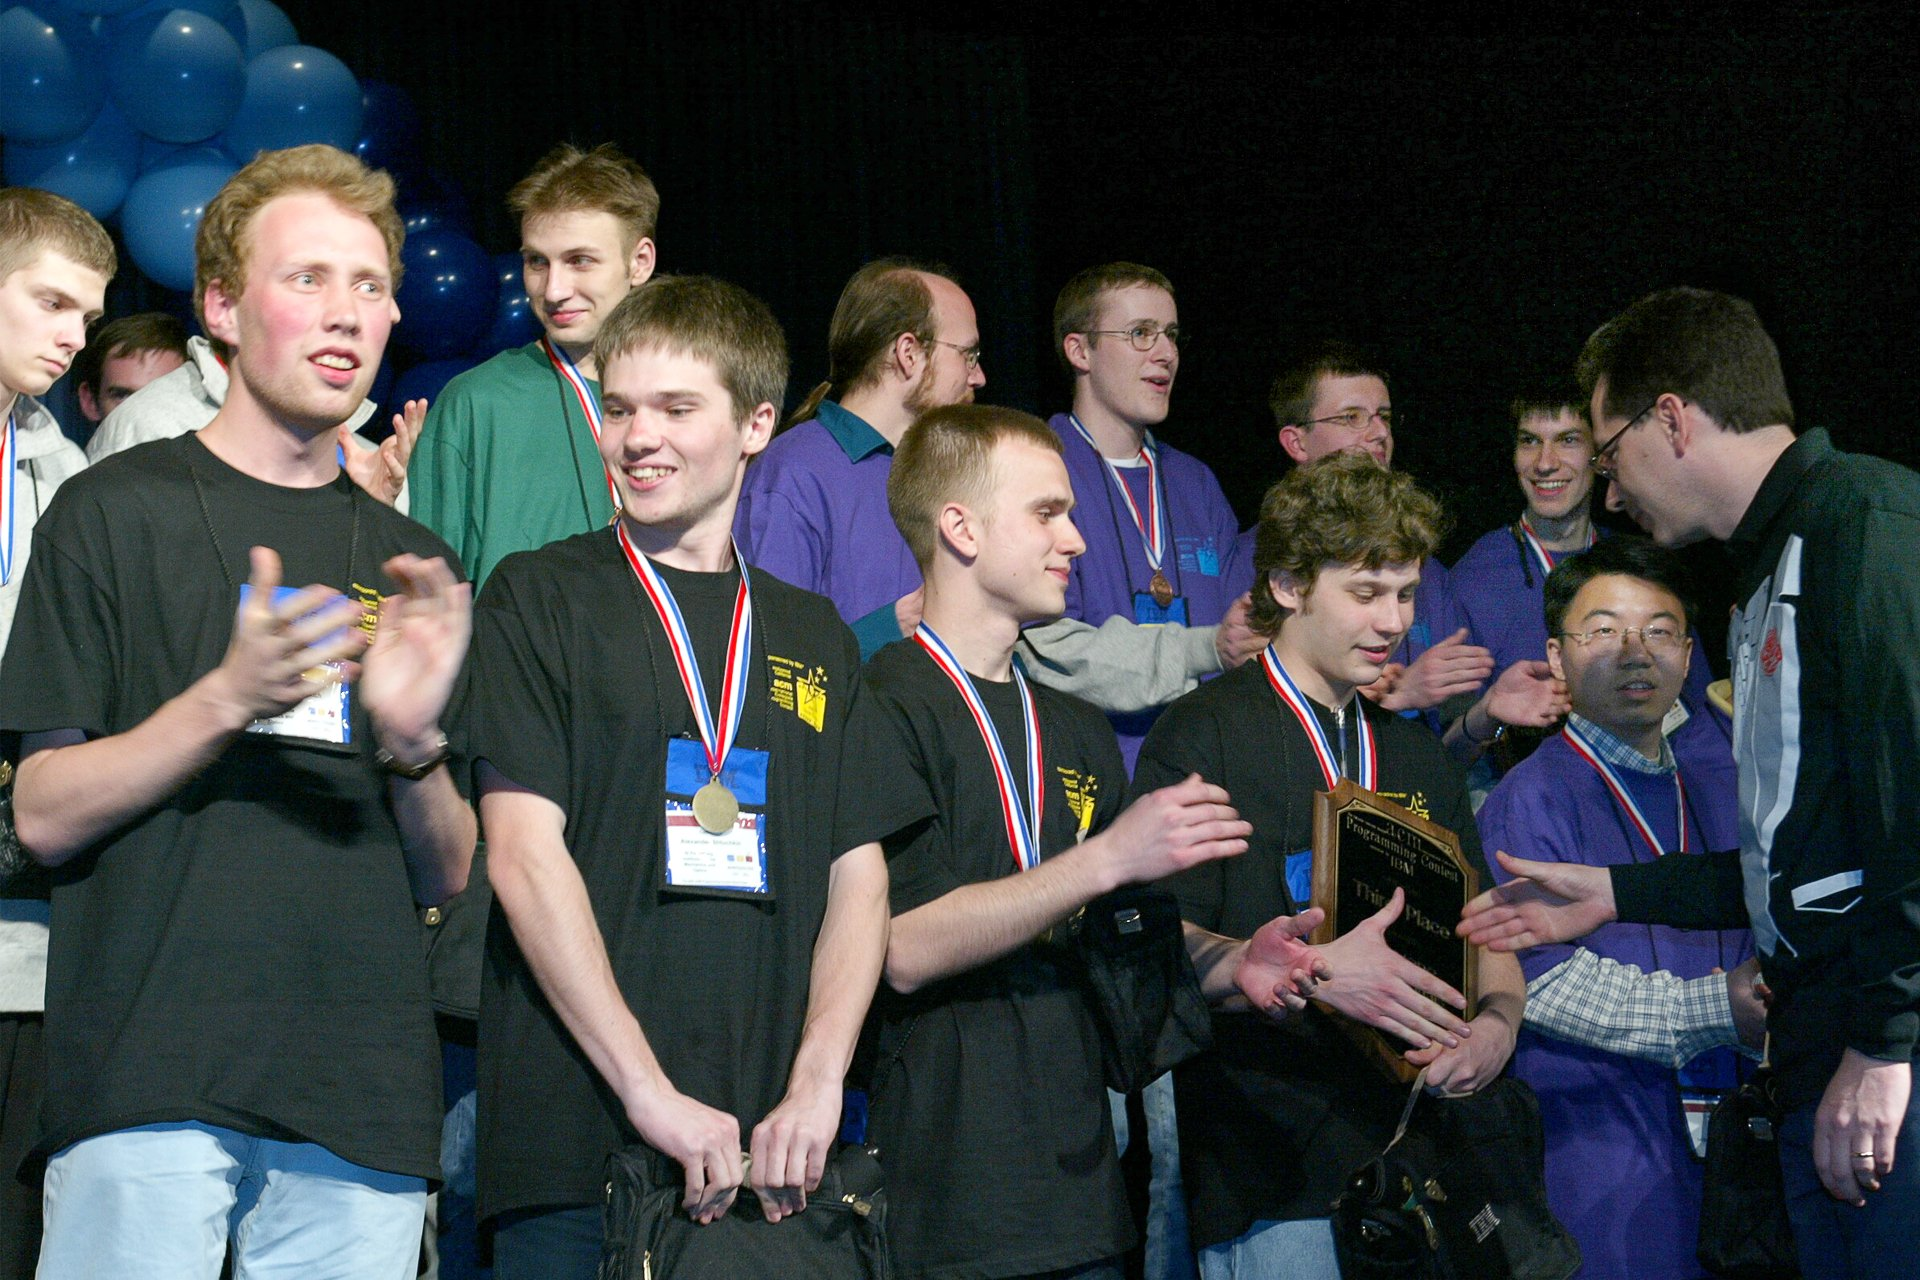 2003 World Finals Champions